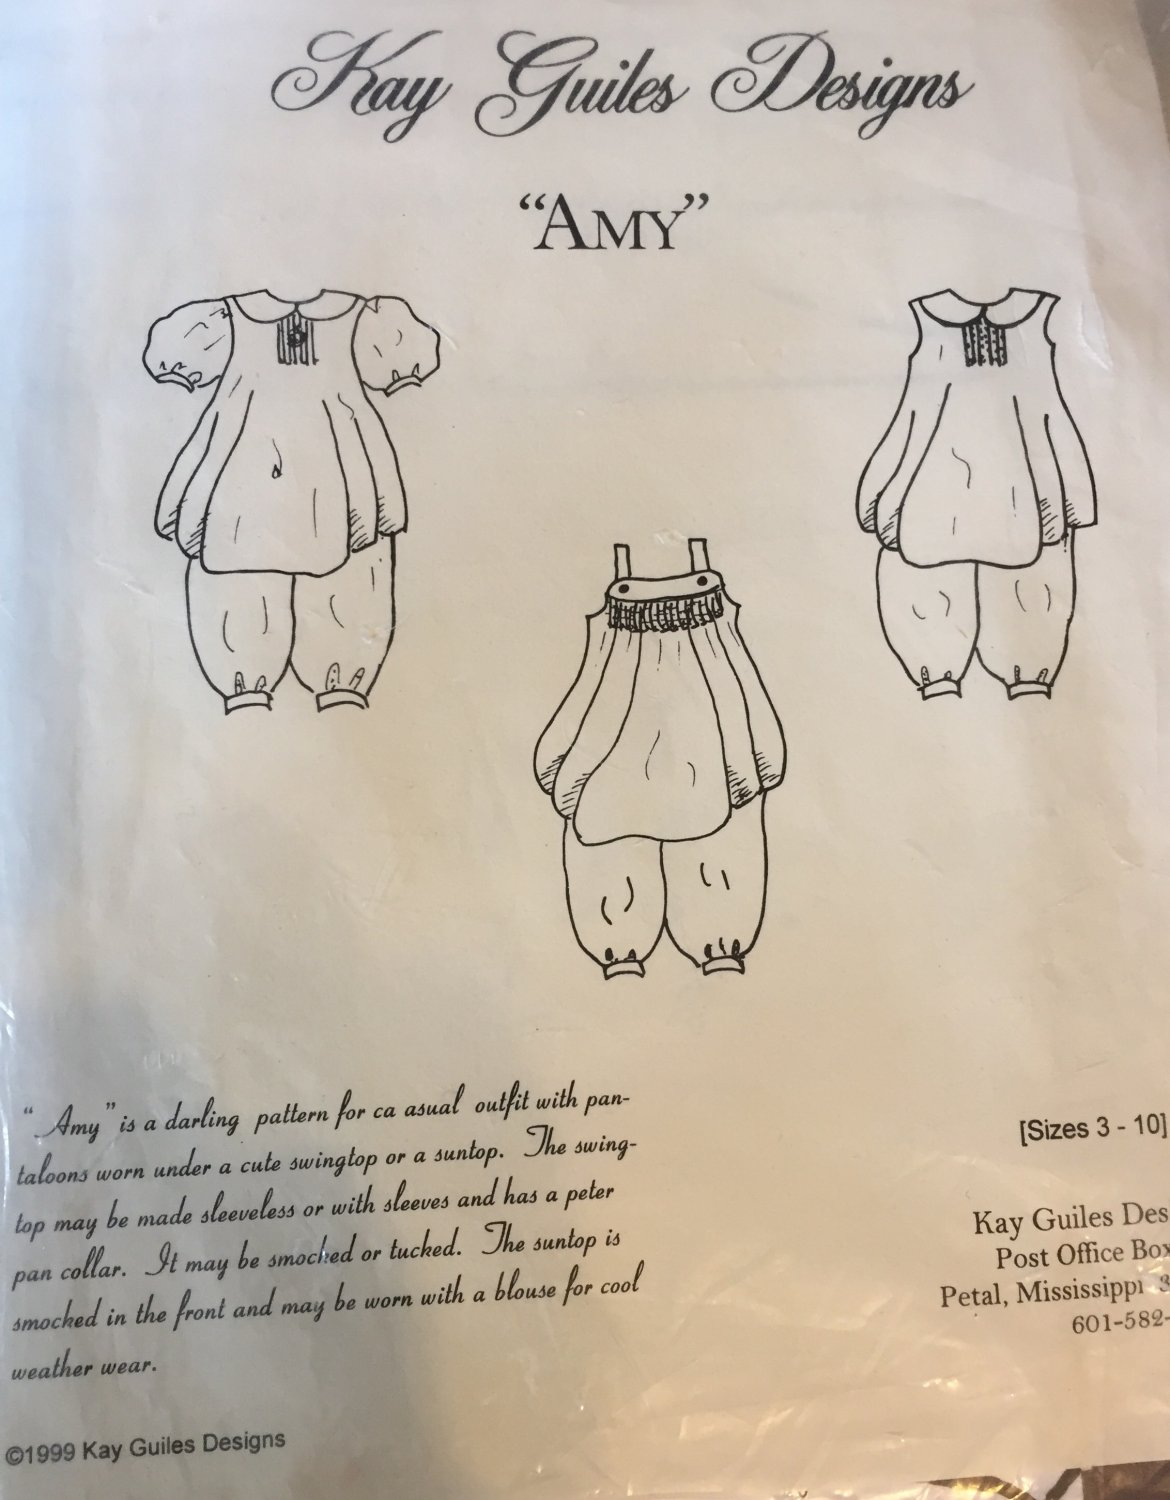 Kay Guiles Designs Amy Pantaloons Suntop for sizes 3-10 Sewing Pattern